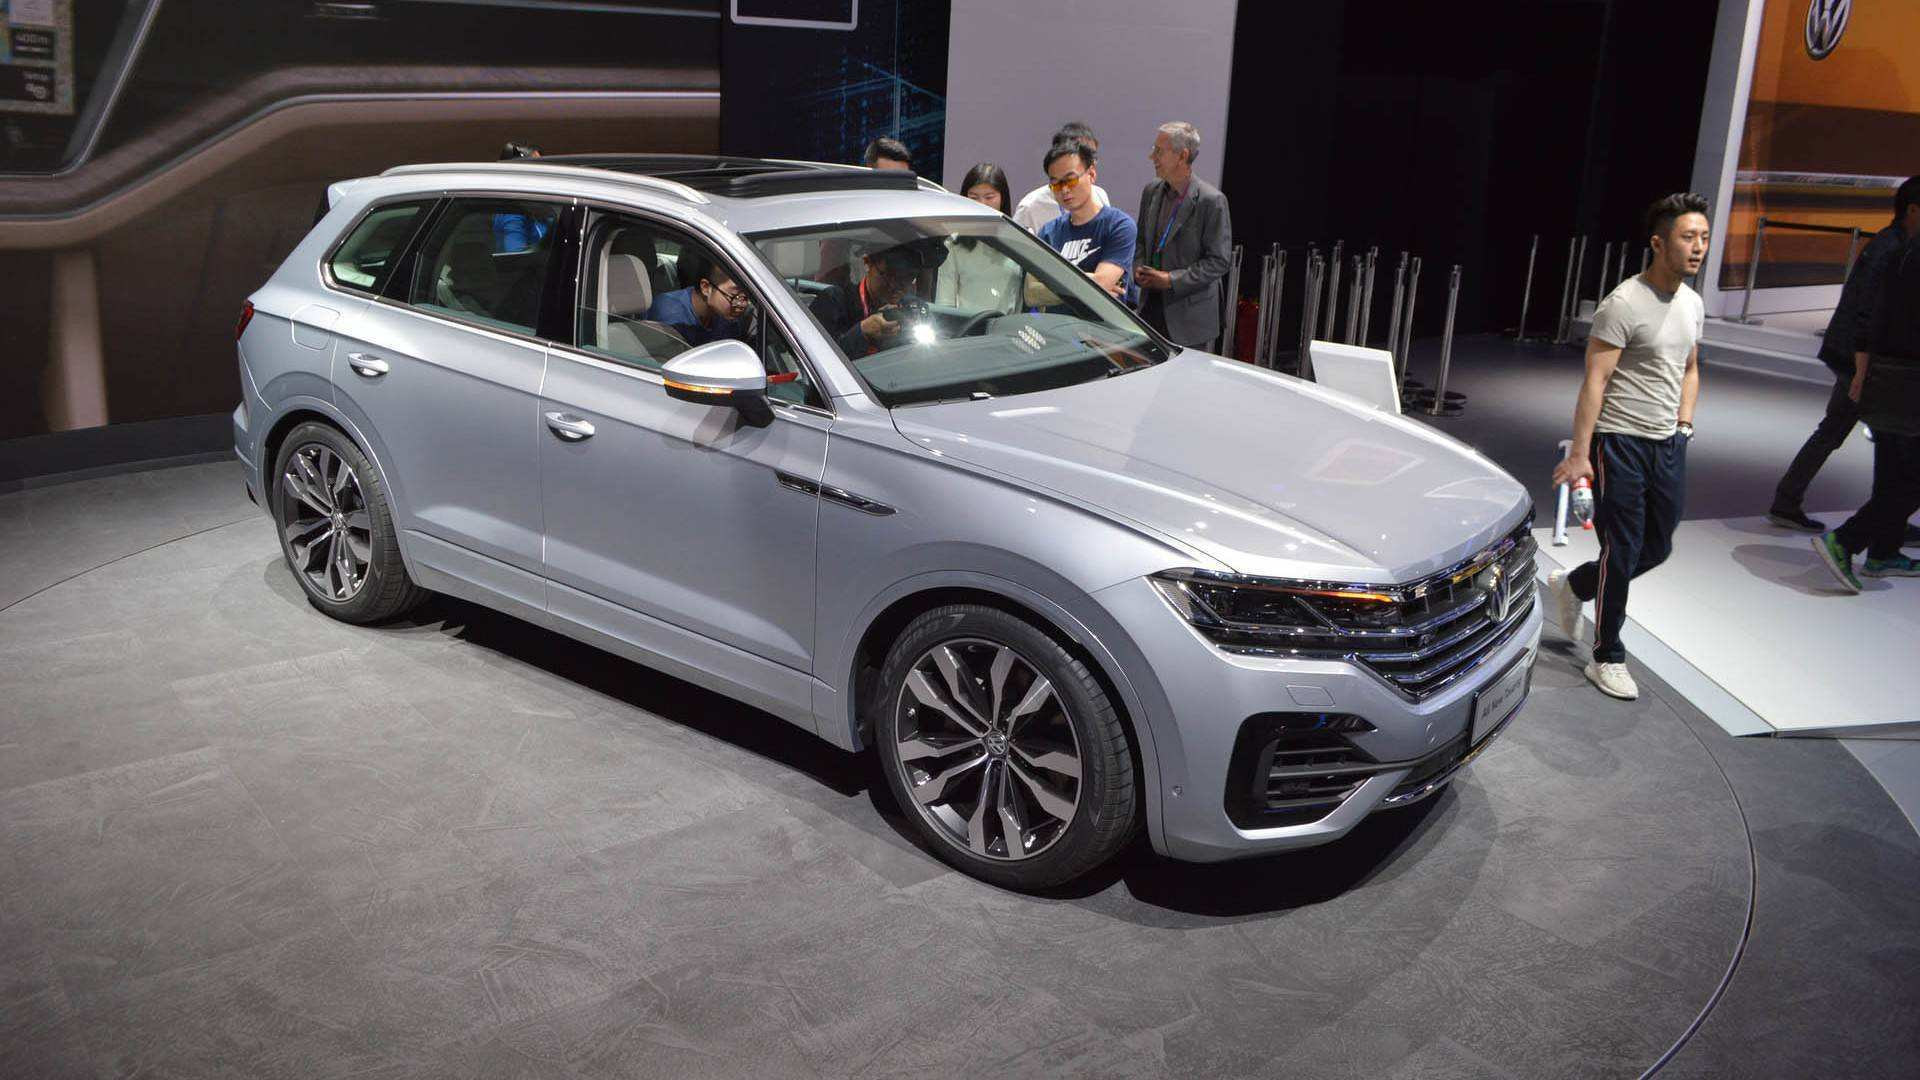 62 All New 2019 VW Touareg Photos